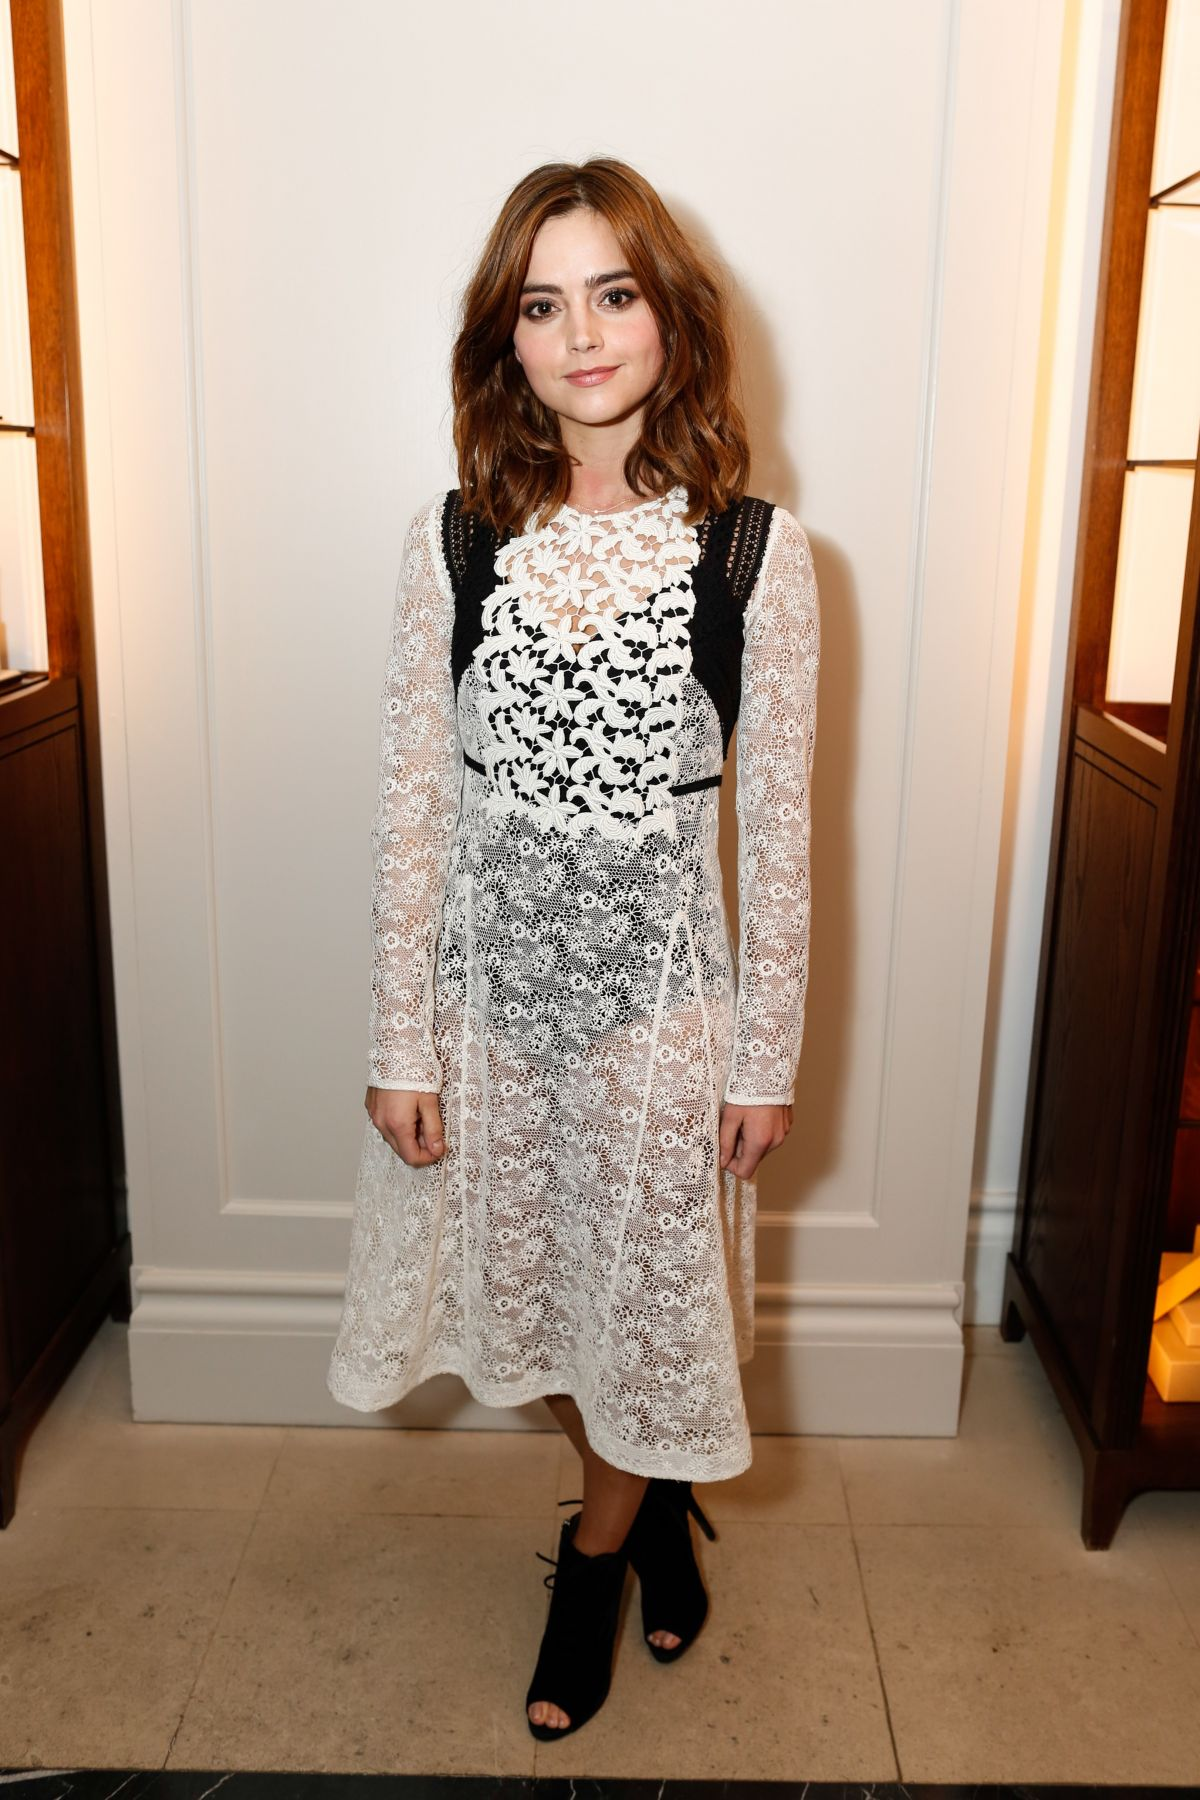 JENNA LOUISE COLEMAN at So It Goes & Burberry Event in ...